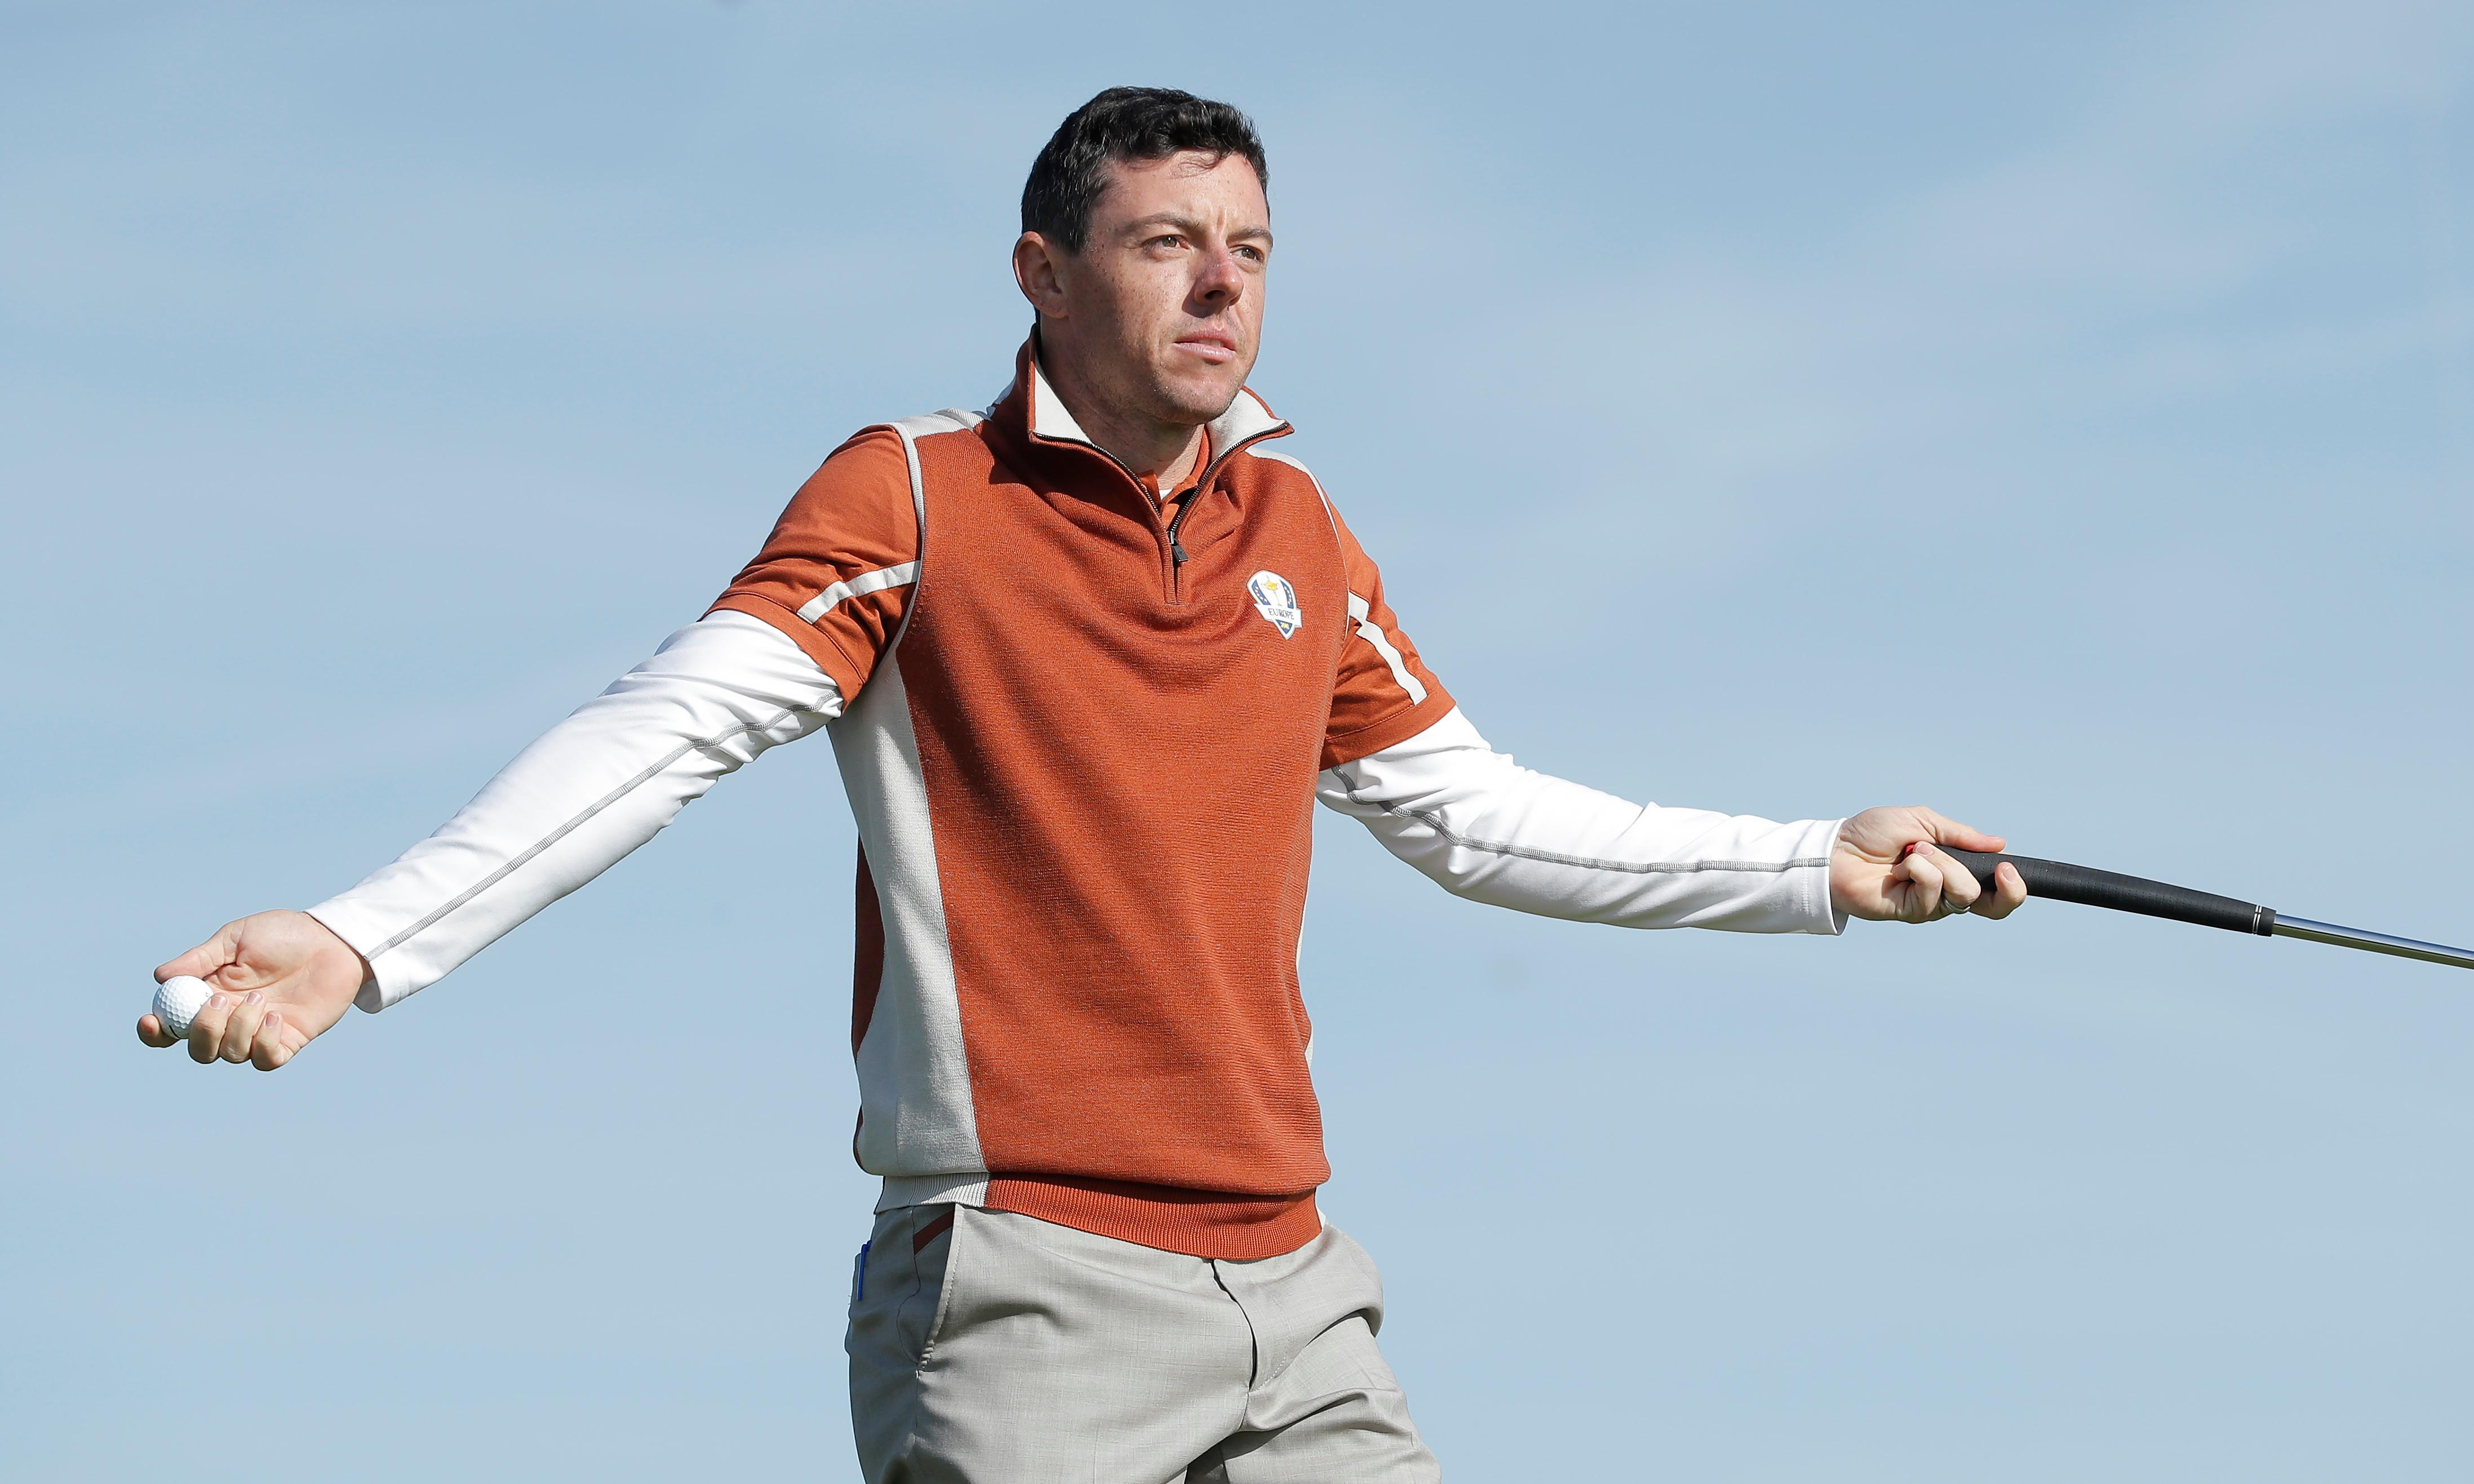 Rory McIlroy in Ryder Cup wobble after being riled by gallery shout